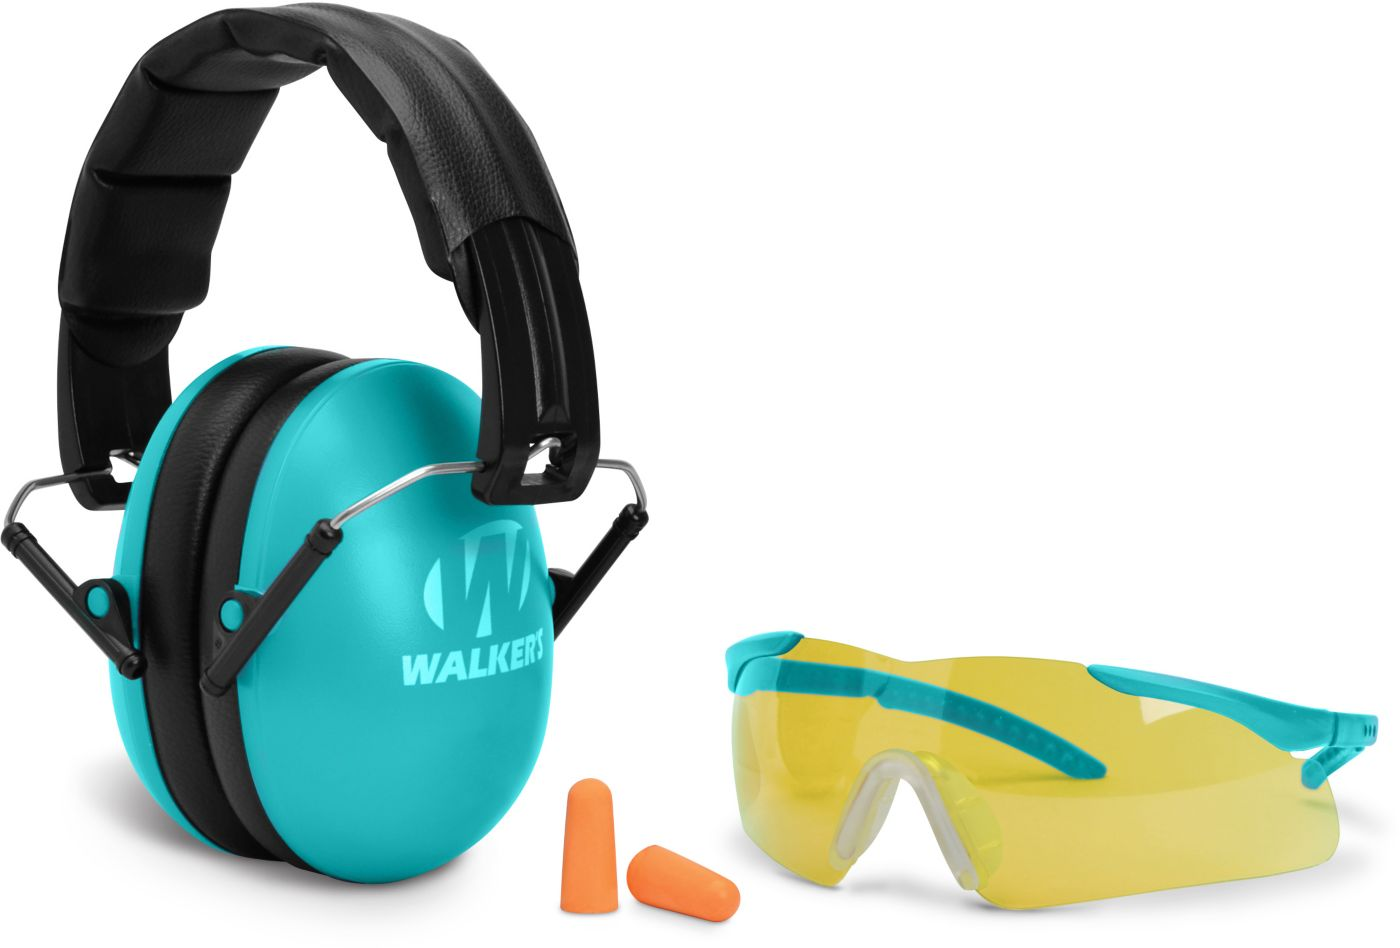 Walker's Youth & Women's Range Muffs and Sports Glasses Combo